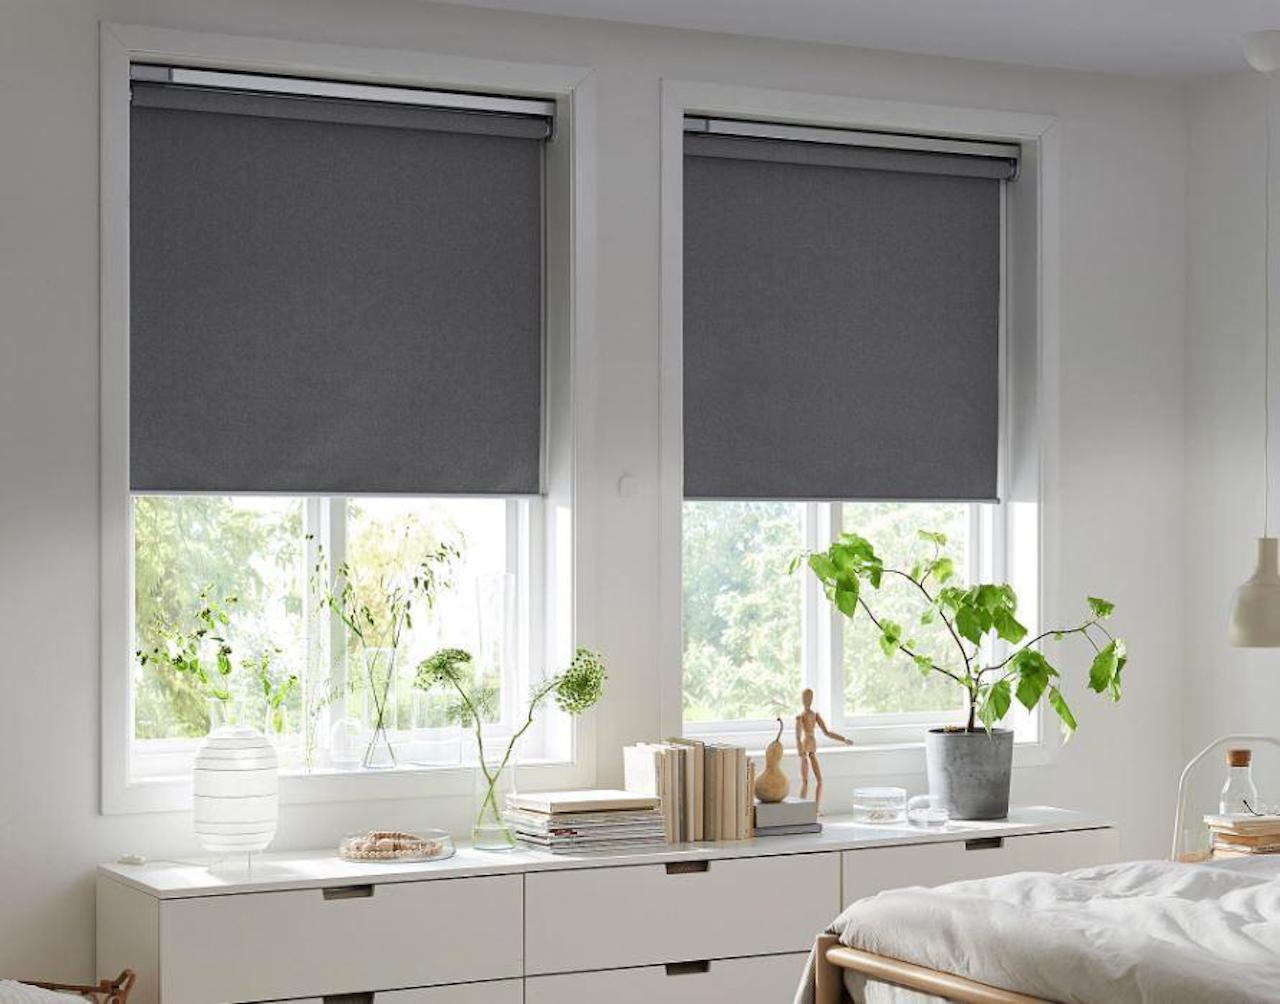 Ikeas Affordable Smart Shades Are Delayed But Theres Good News